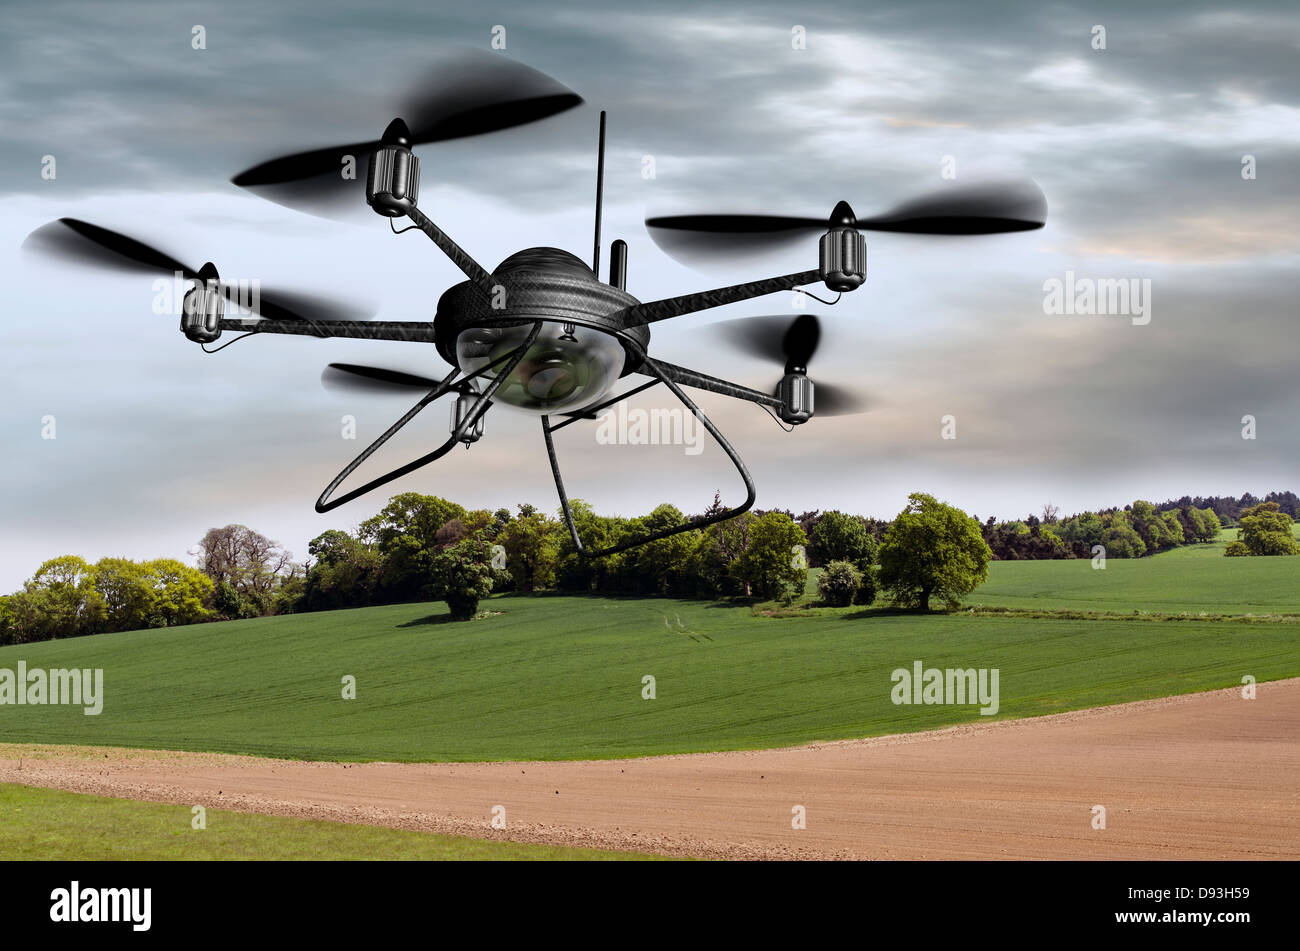 Illustration of a surveillance drone searching the countryside - Stock Image